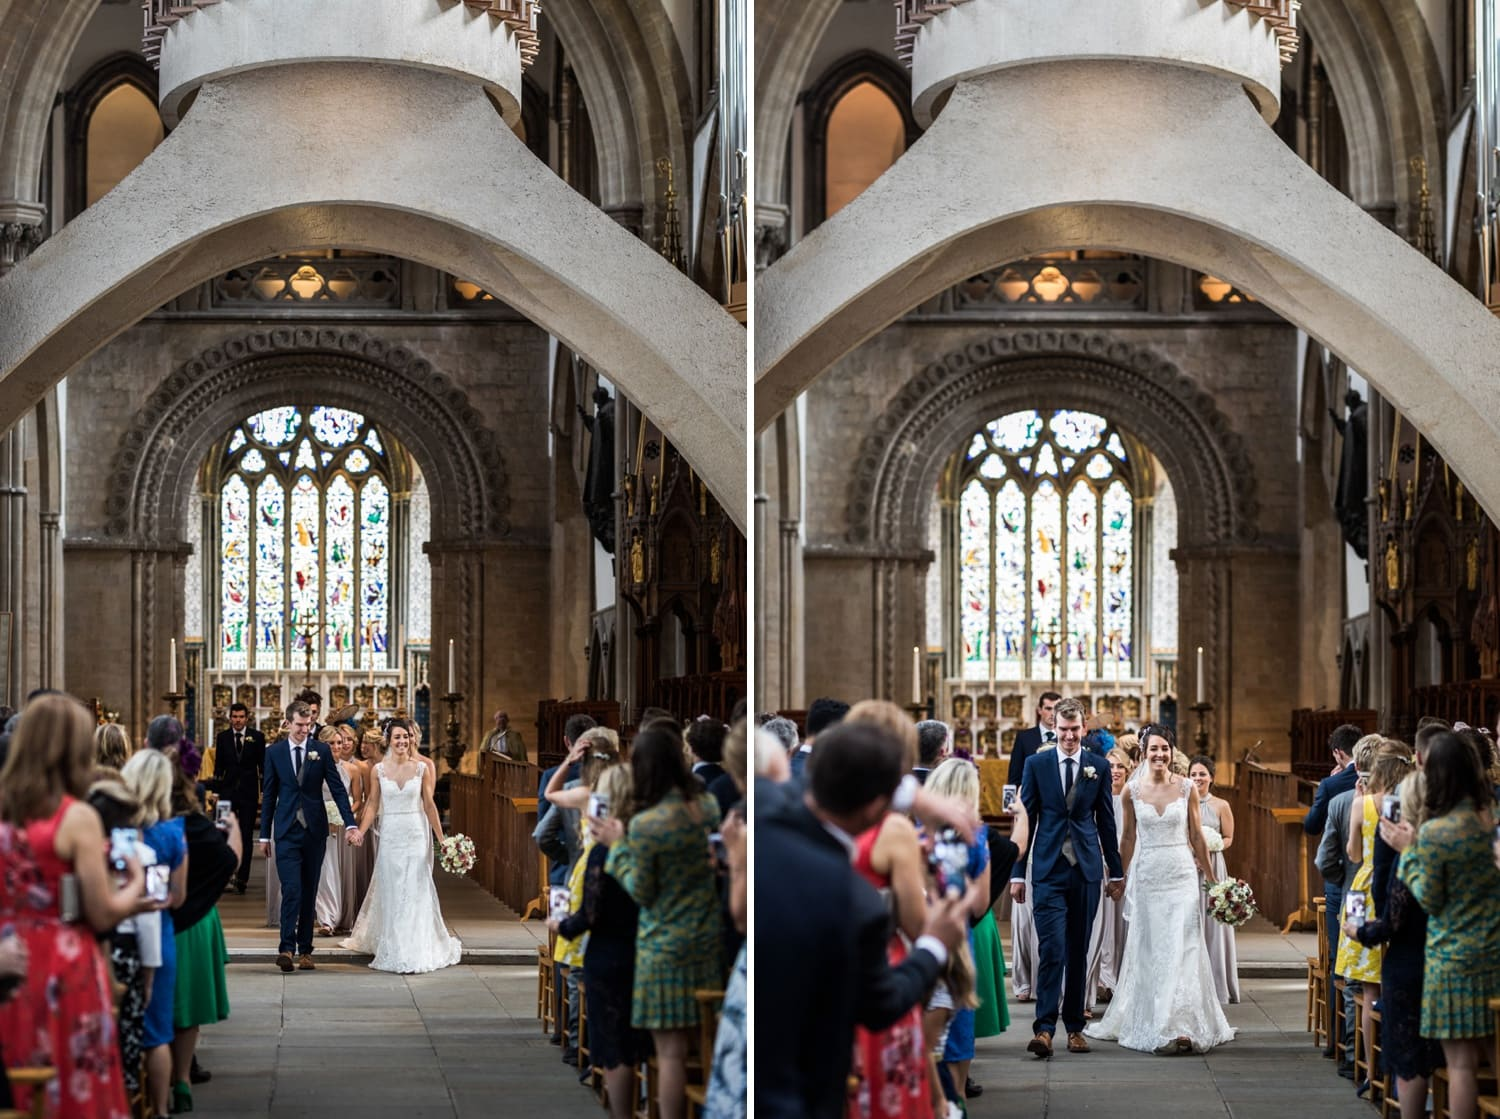 Bride and groom walk down the aisle at Llandaff Cathedral